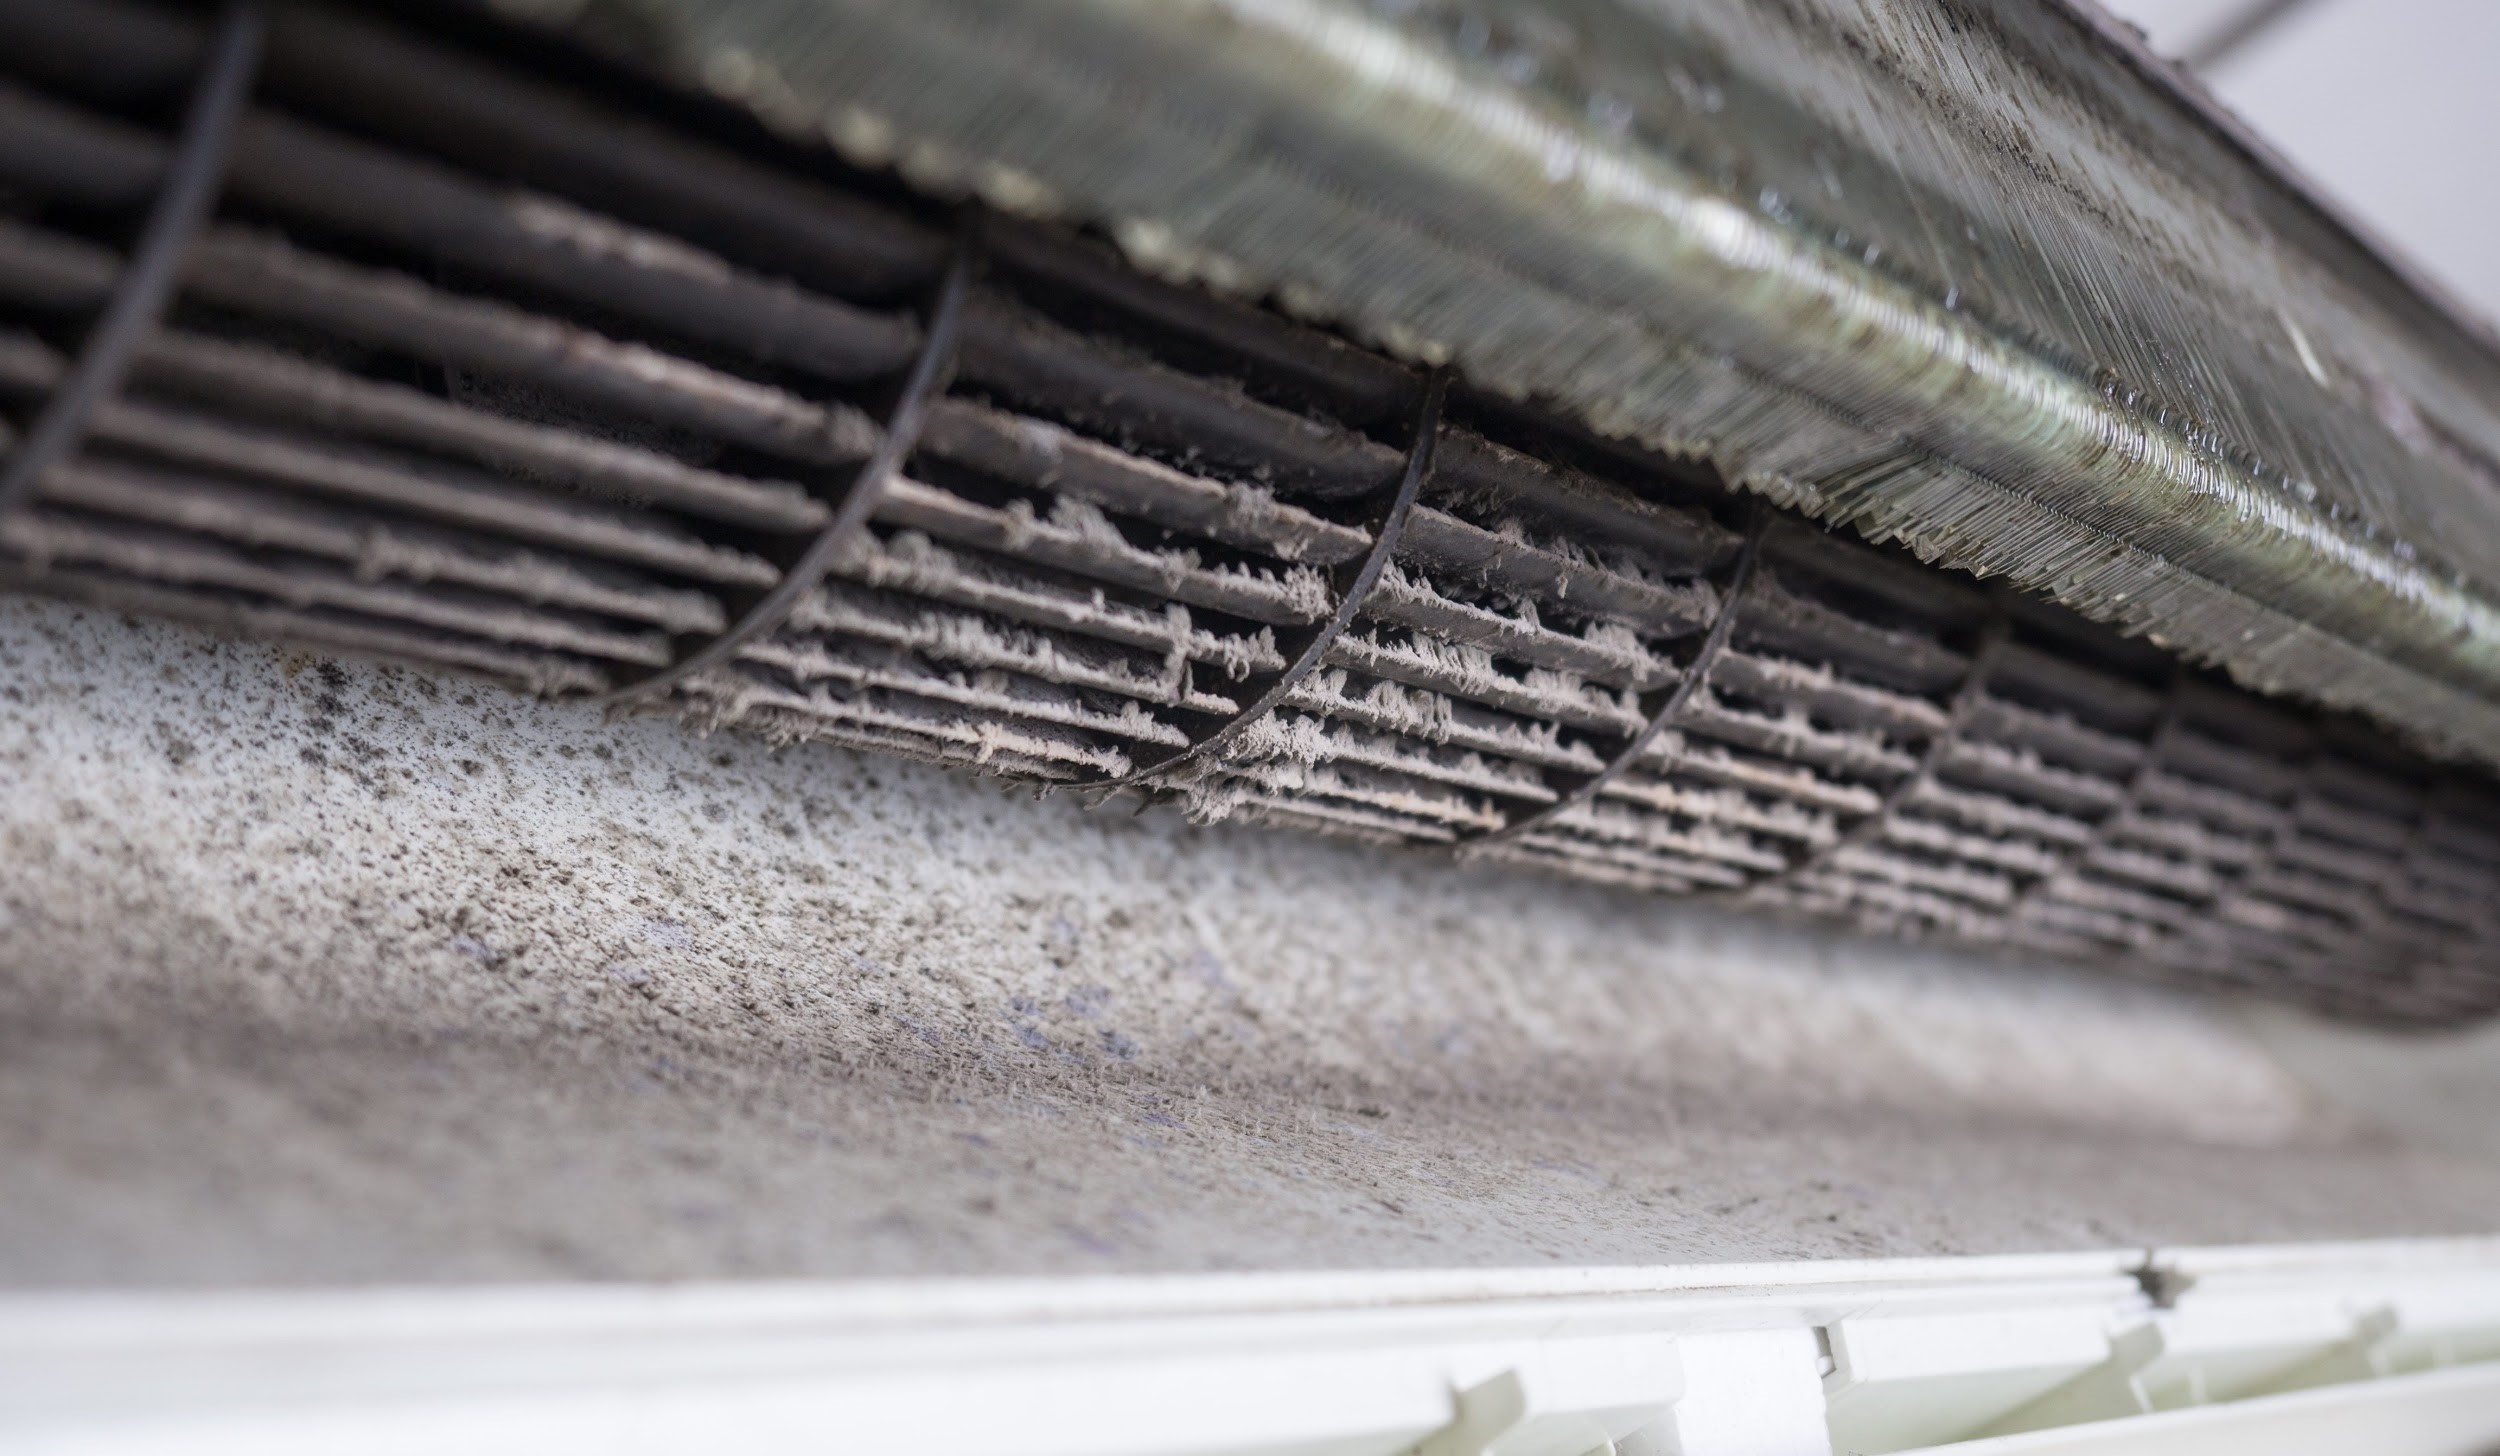 【7 Questions about Air-conditioner Cleaning】All you need to know about air-conditioner detergent and the pros & cons of air-conditioner cleaning service from the expert consultant, Yeung Ming Lam